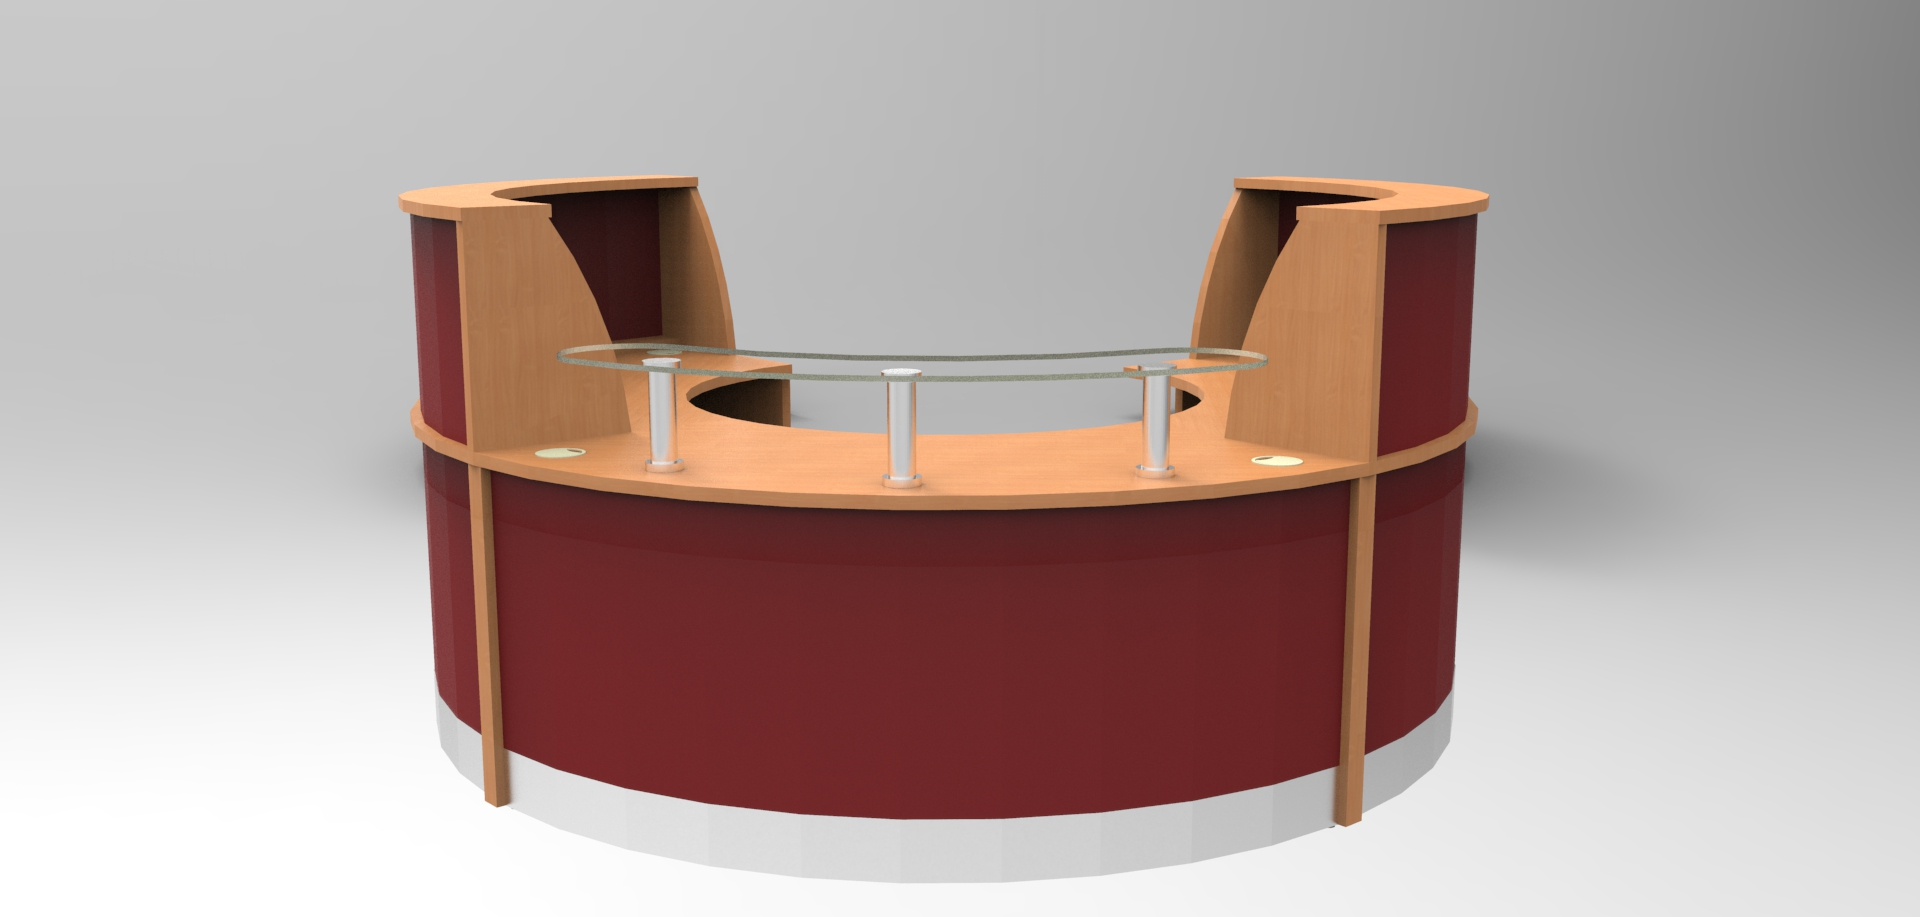 Image 36F/LP -Large Flex Polo Beech and Burgundy reception desk (2400mm wide x 2050mm deep).